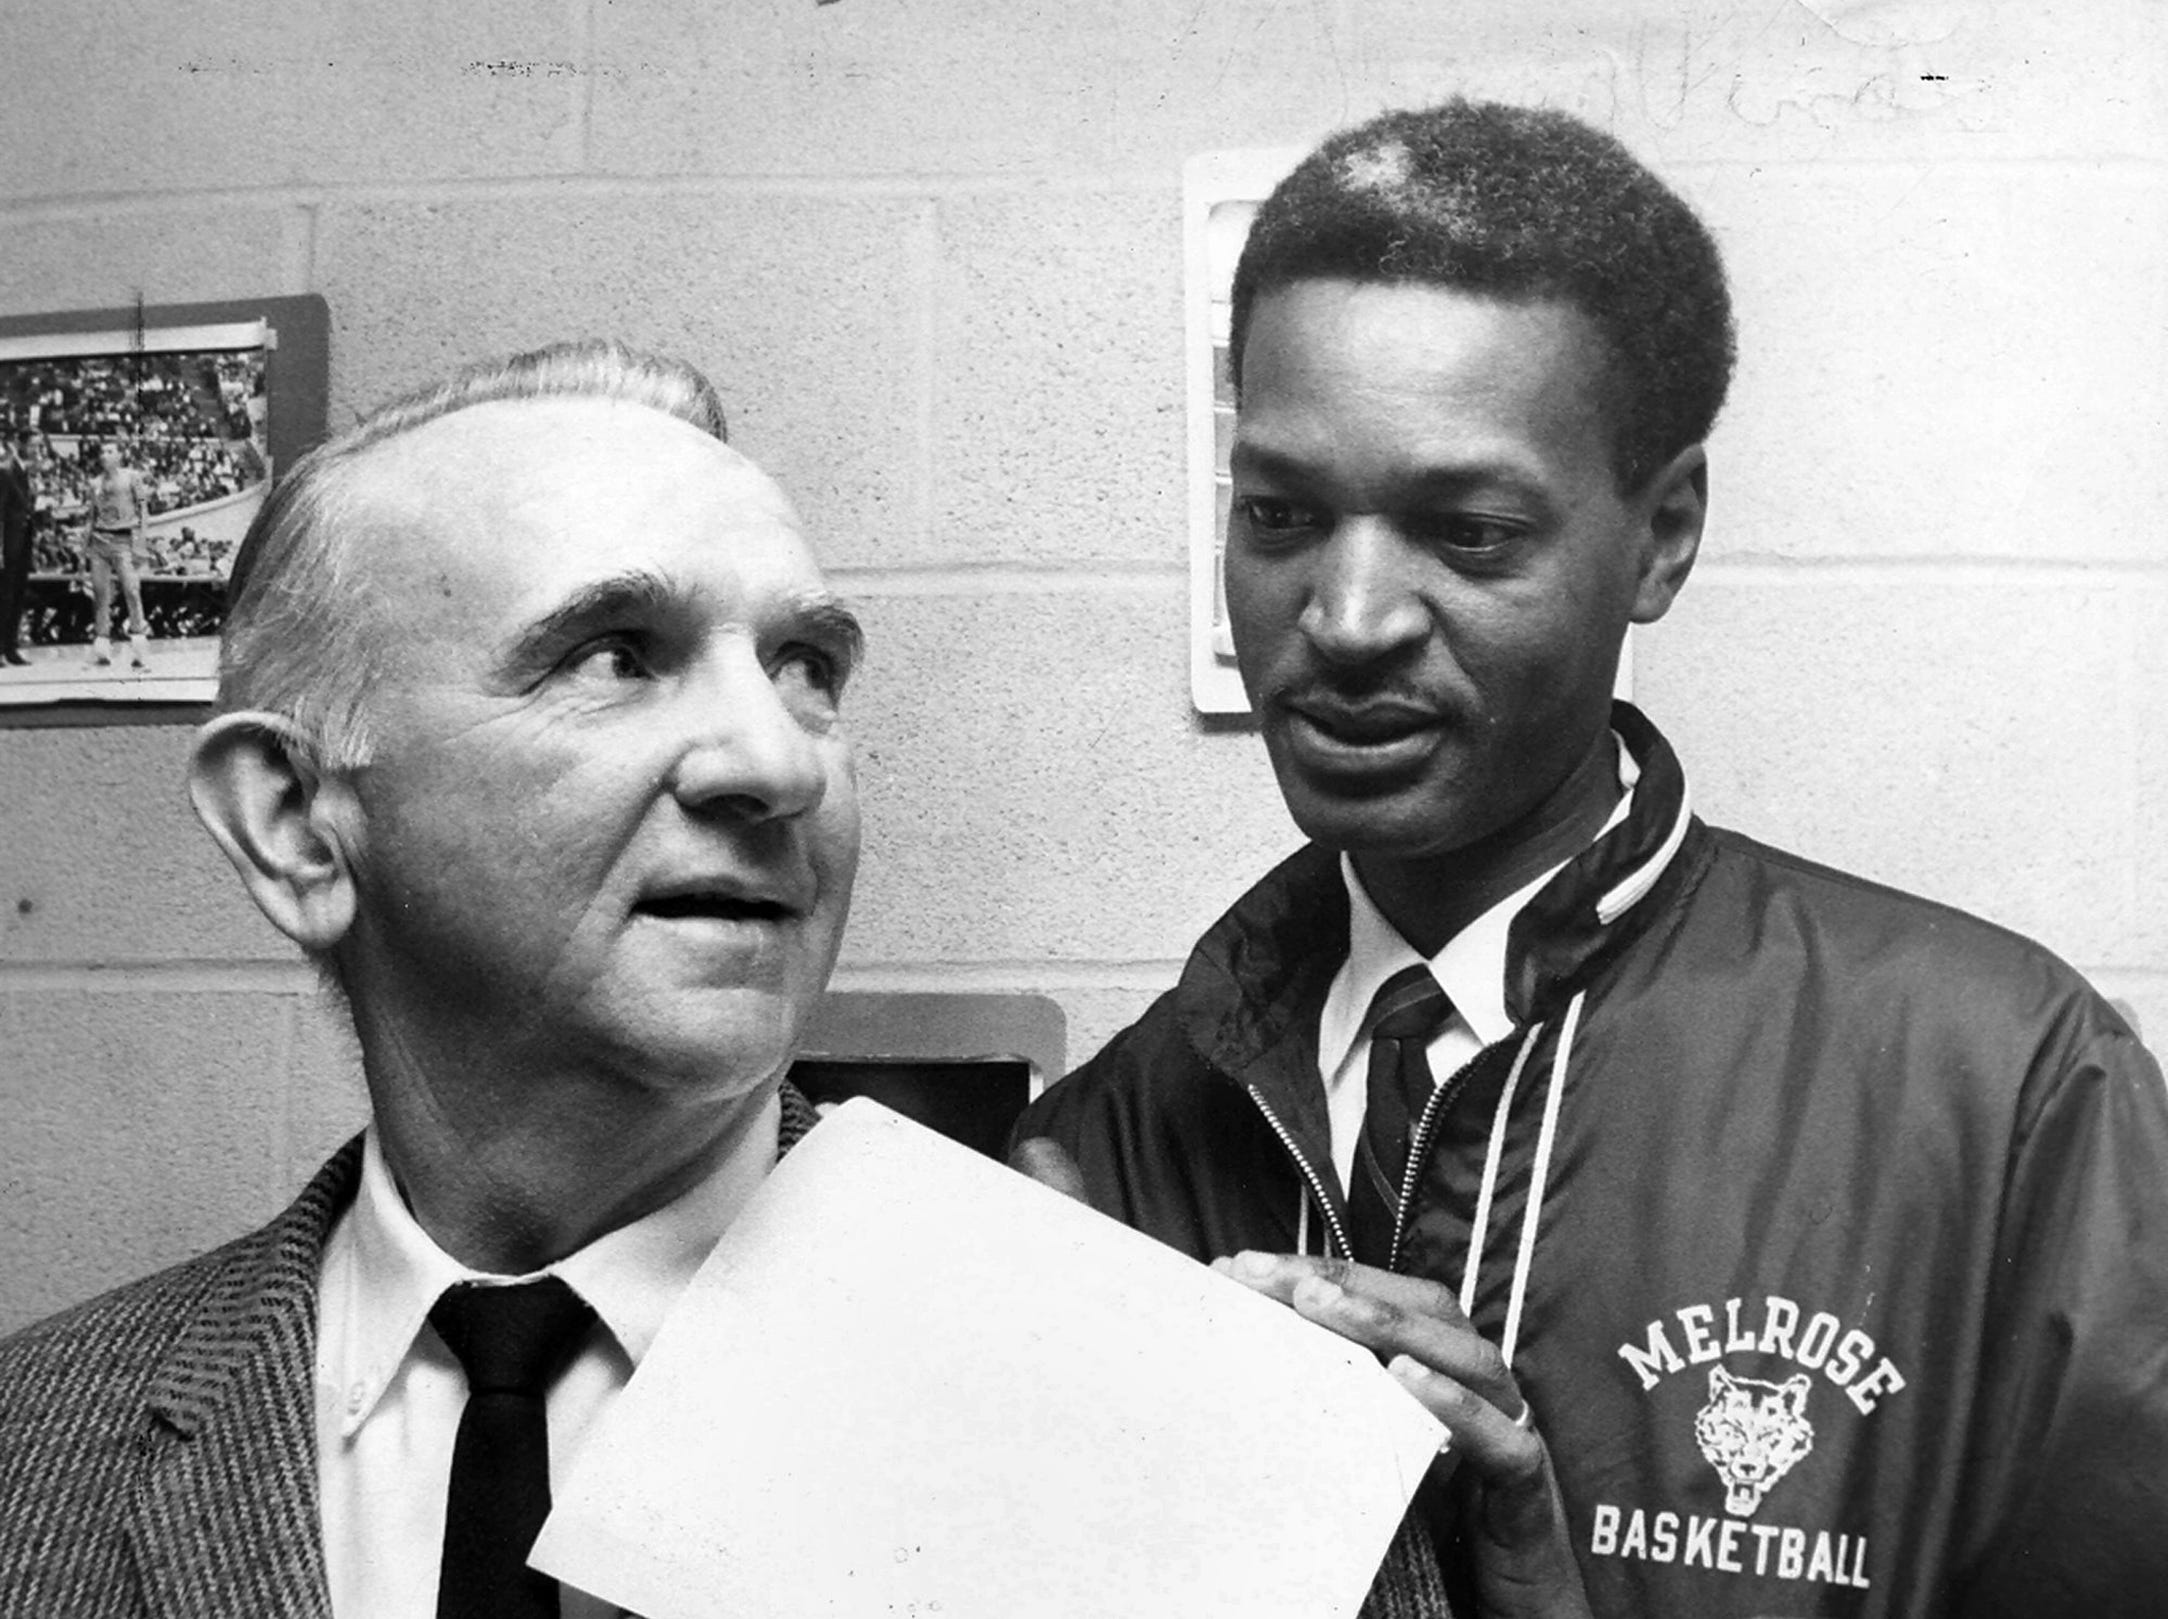 Melrose coach Williams Collins (right) agreed on Jan. 14, 1969, to take his unbeaten high-scoring Wildcats to Nashville to play one of Nashville's three ranked teams on Feb. 1. Promoter Lon Varnell (left) said that an opponent for Melrose would be announced.